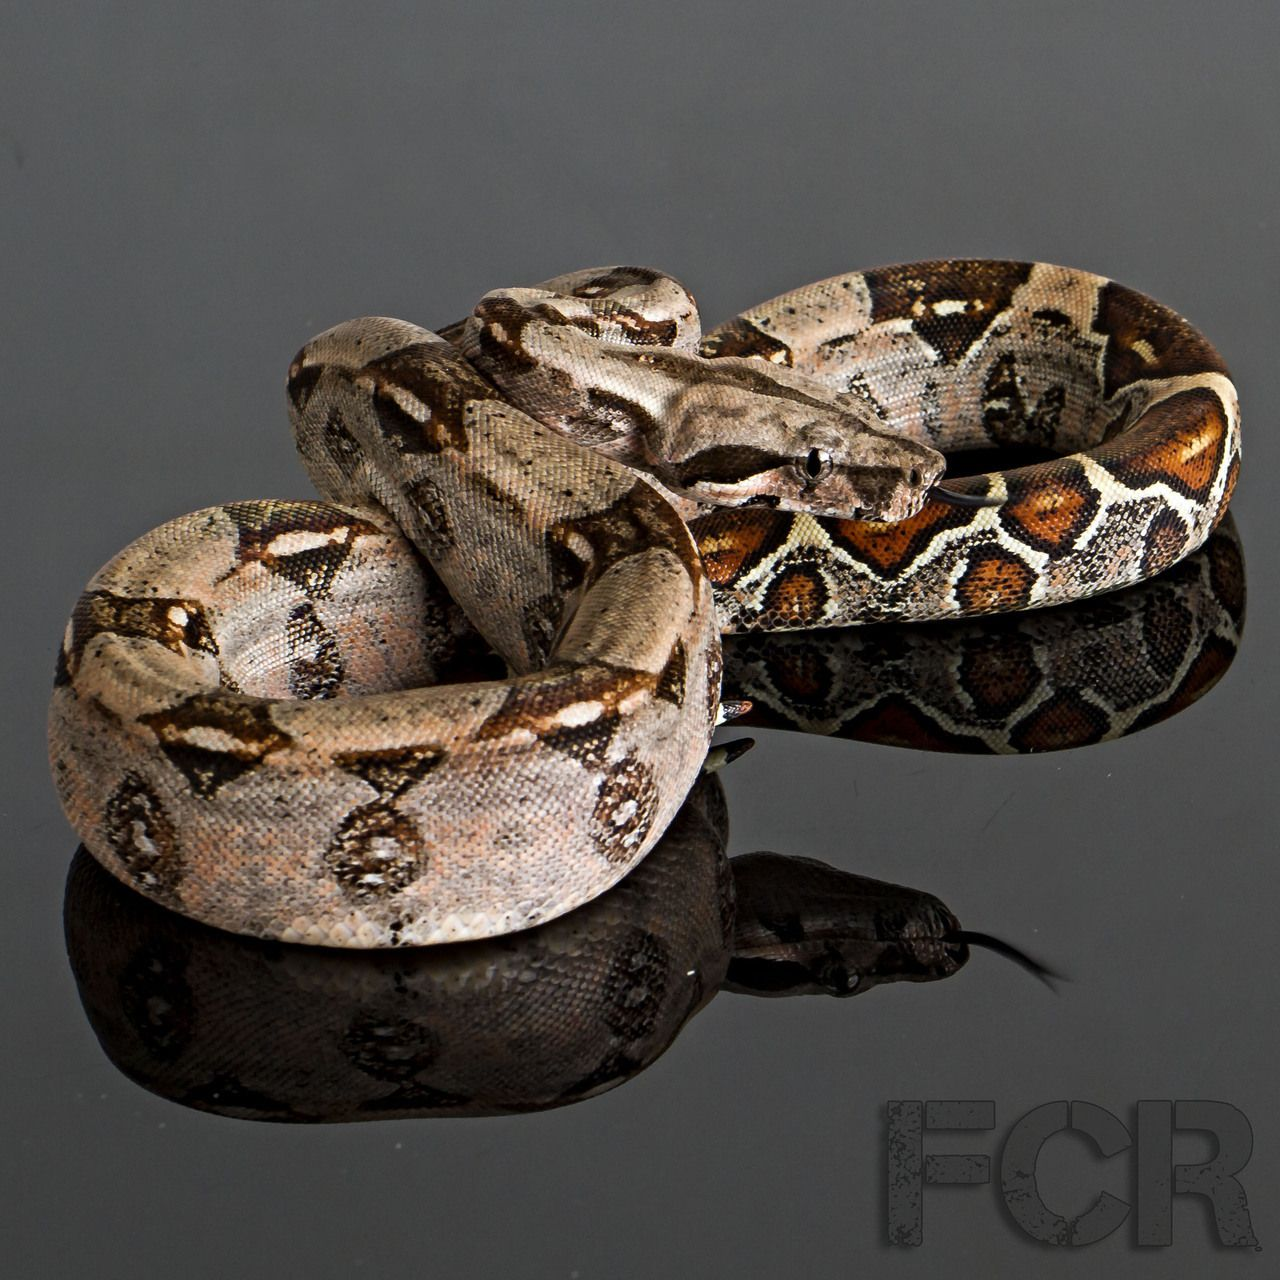 Columbian Red Tail Boa A Tattoo Pictures | Animals | Red